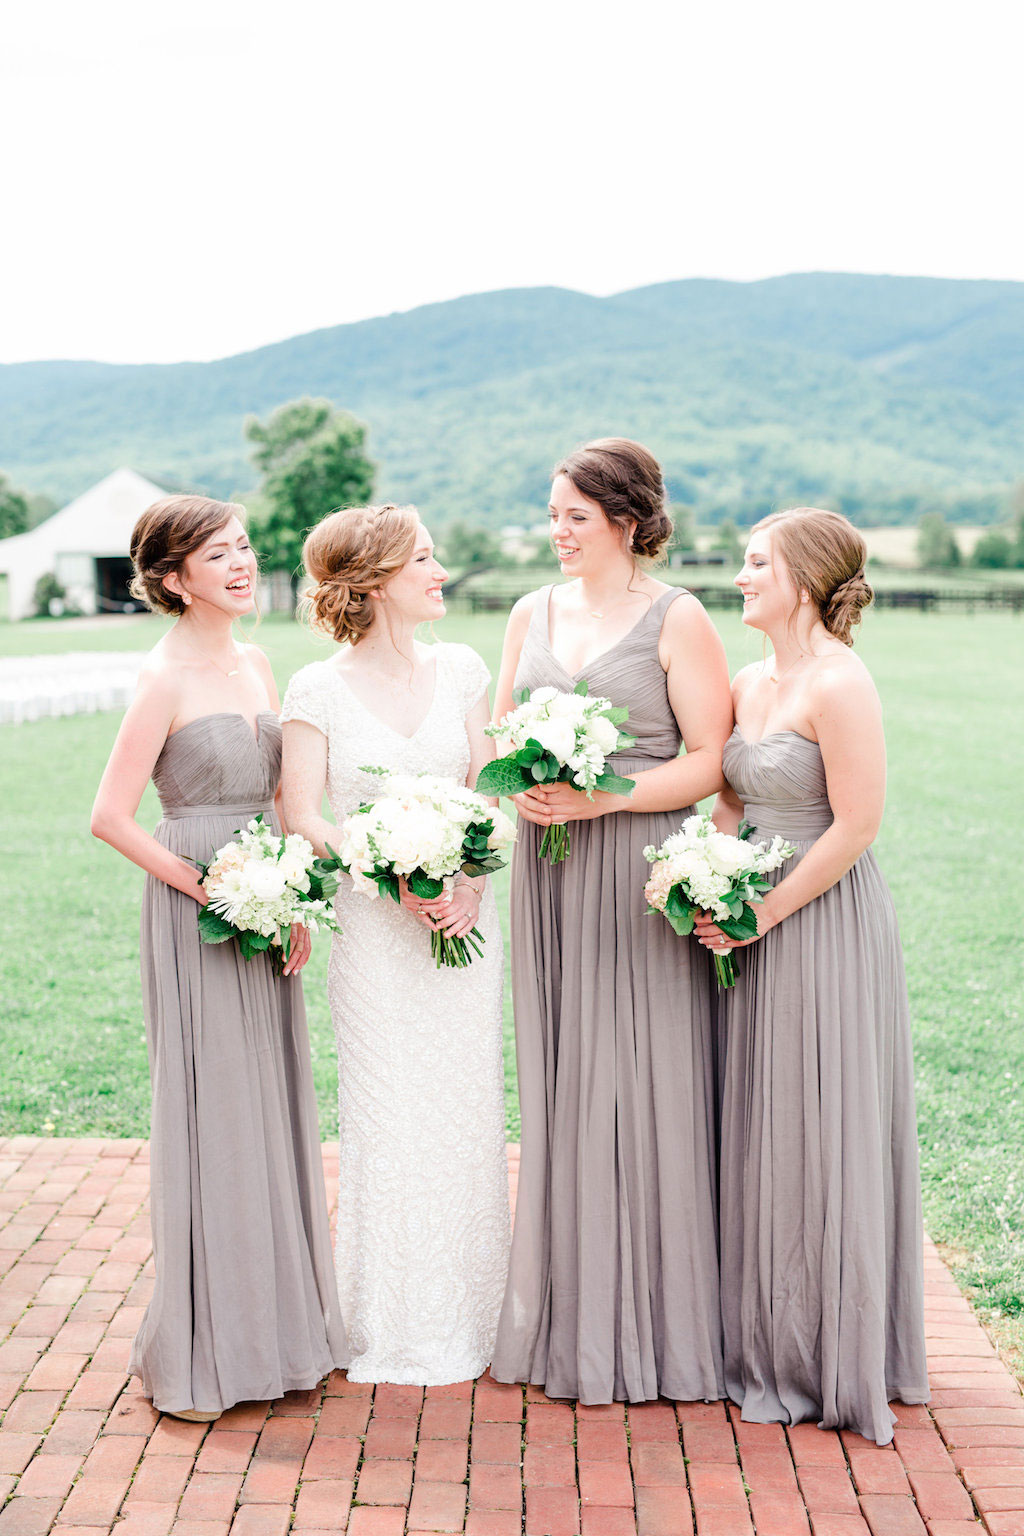 8-16-16-blue-virginia-vineyard-wedding-11